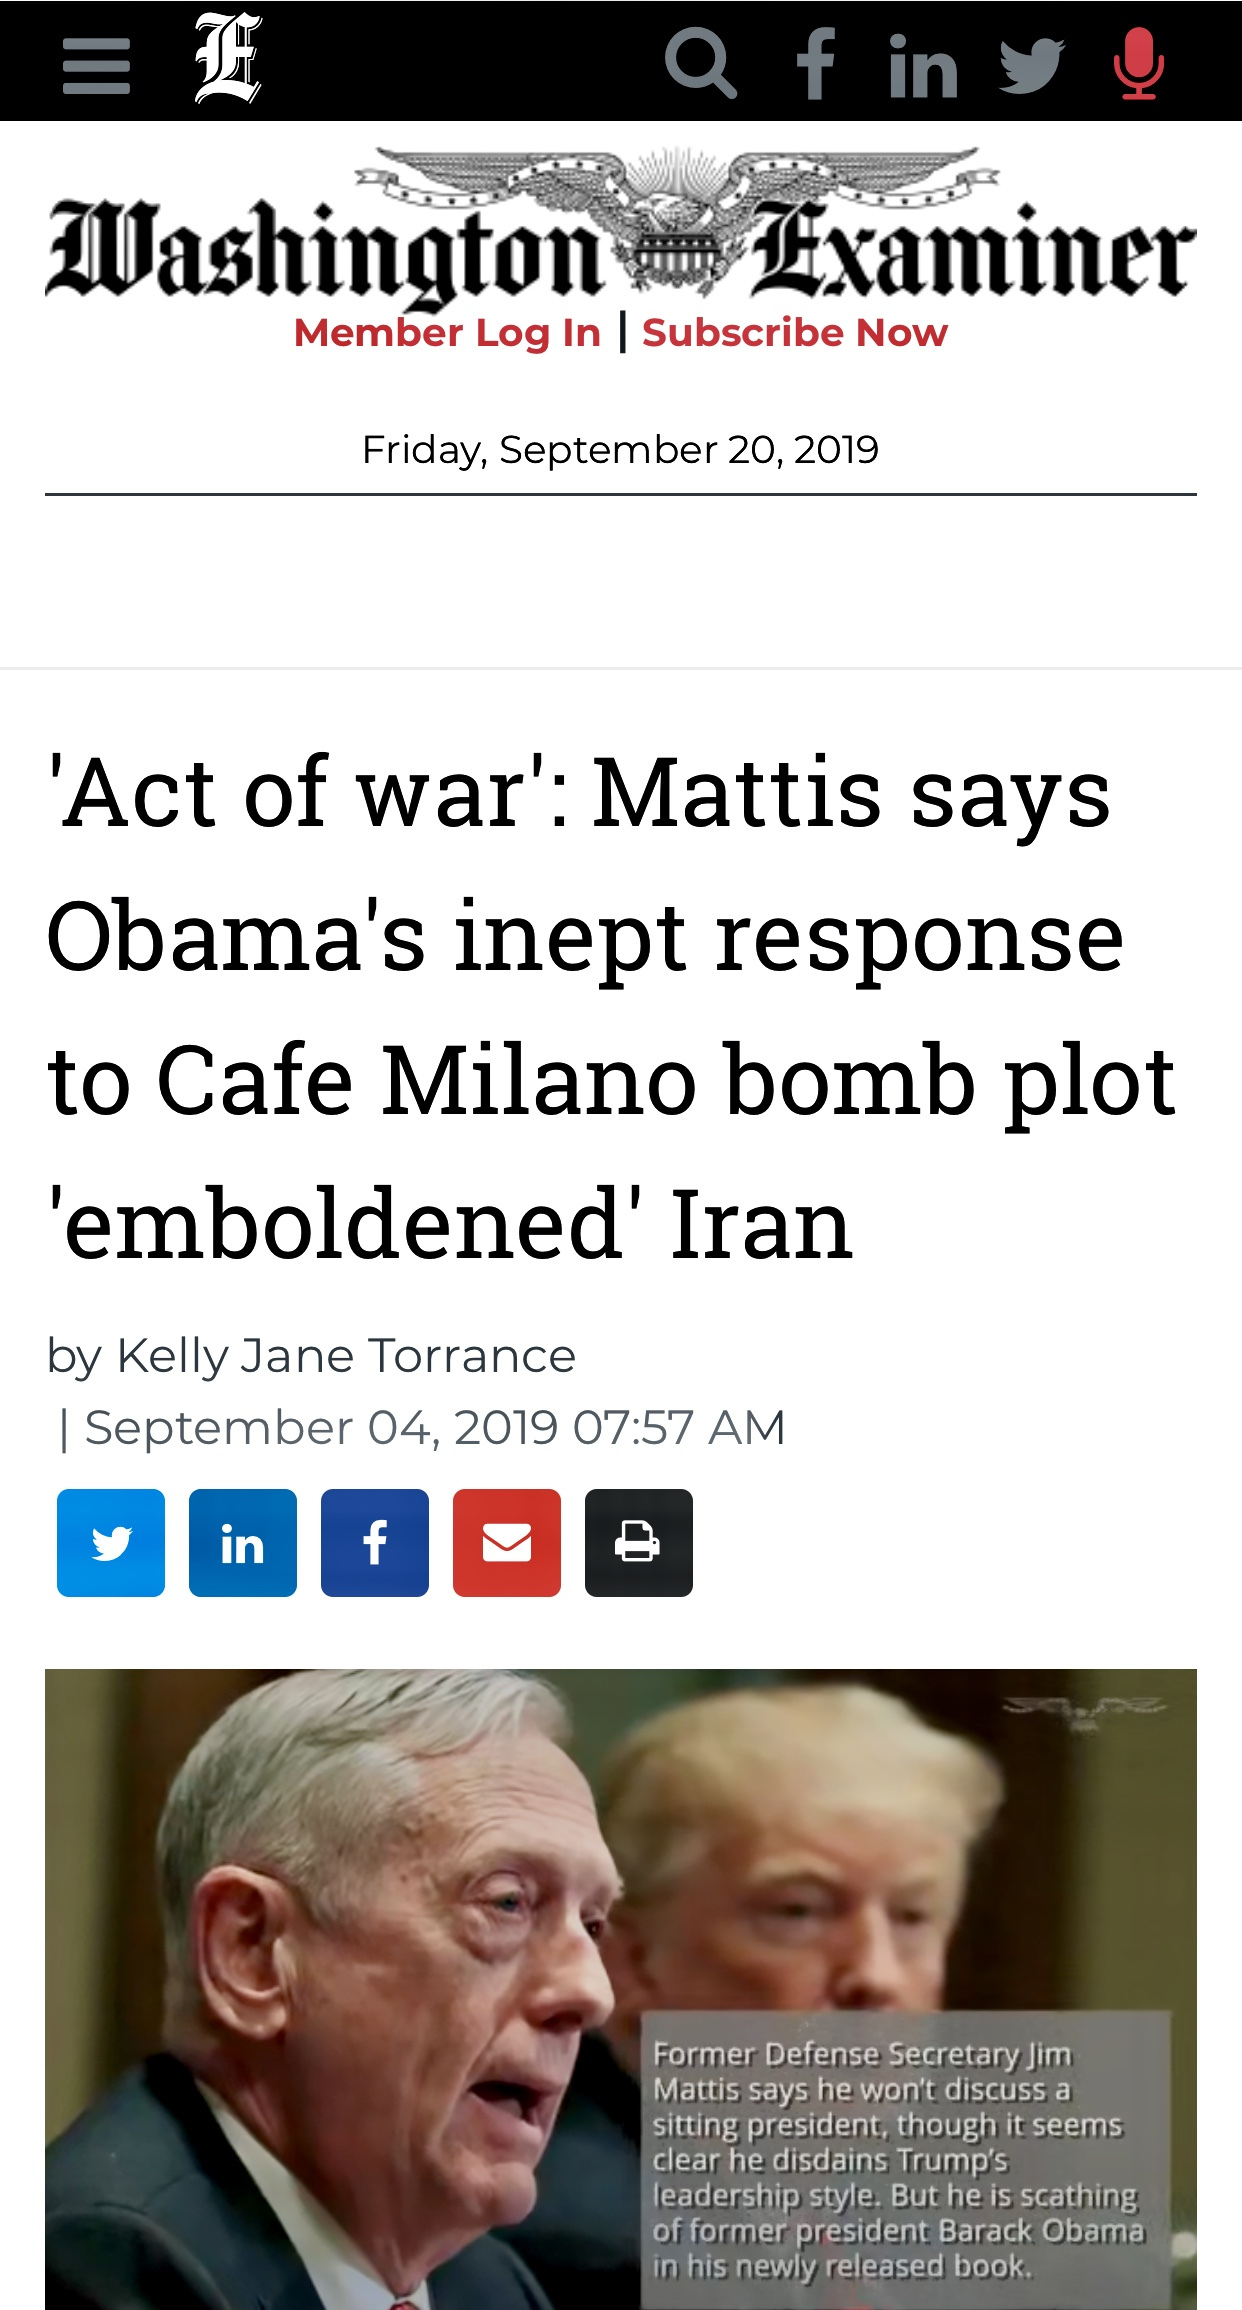 'Act of war': Mattis says Obama's inept response to Cafe Milano bomb plot 'emboldened' Iran